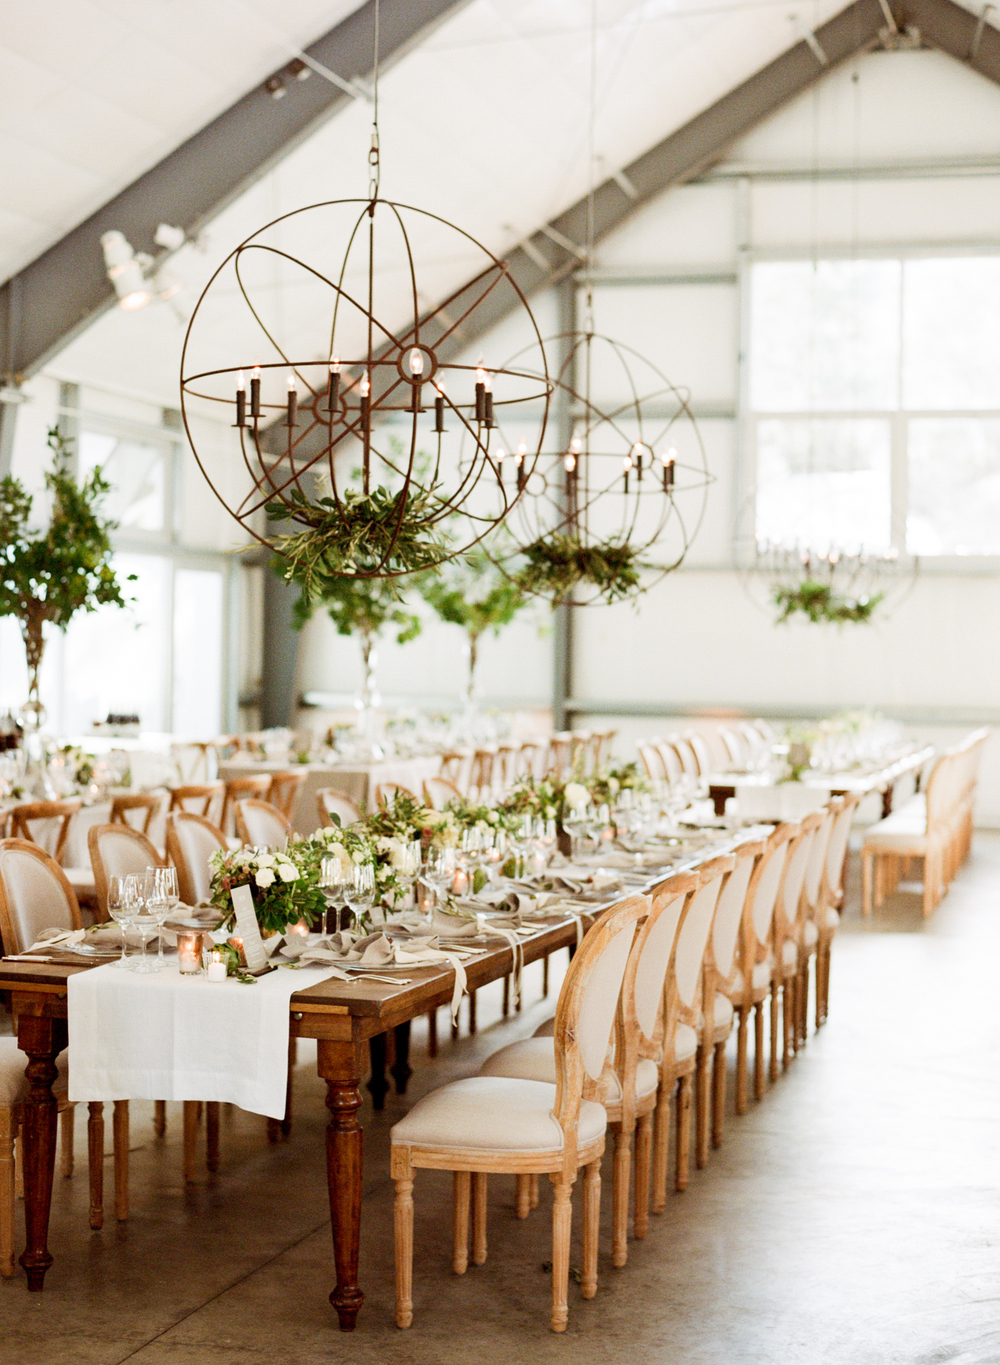 SylvieGil-Durham-Ranch-Organic-Ethereal-Rustic-Chandelier-Industrial-Chic-Wedding